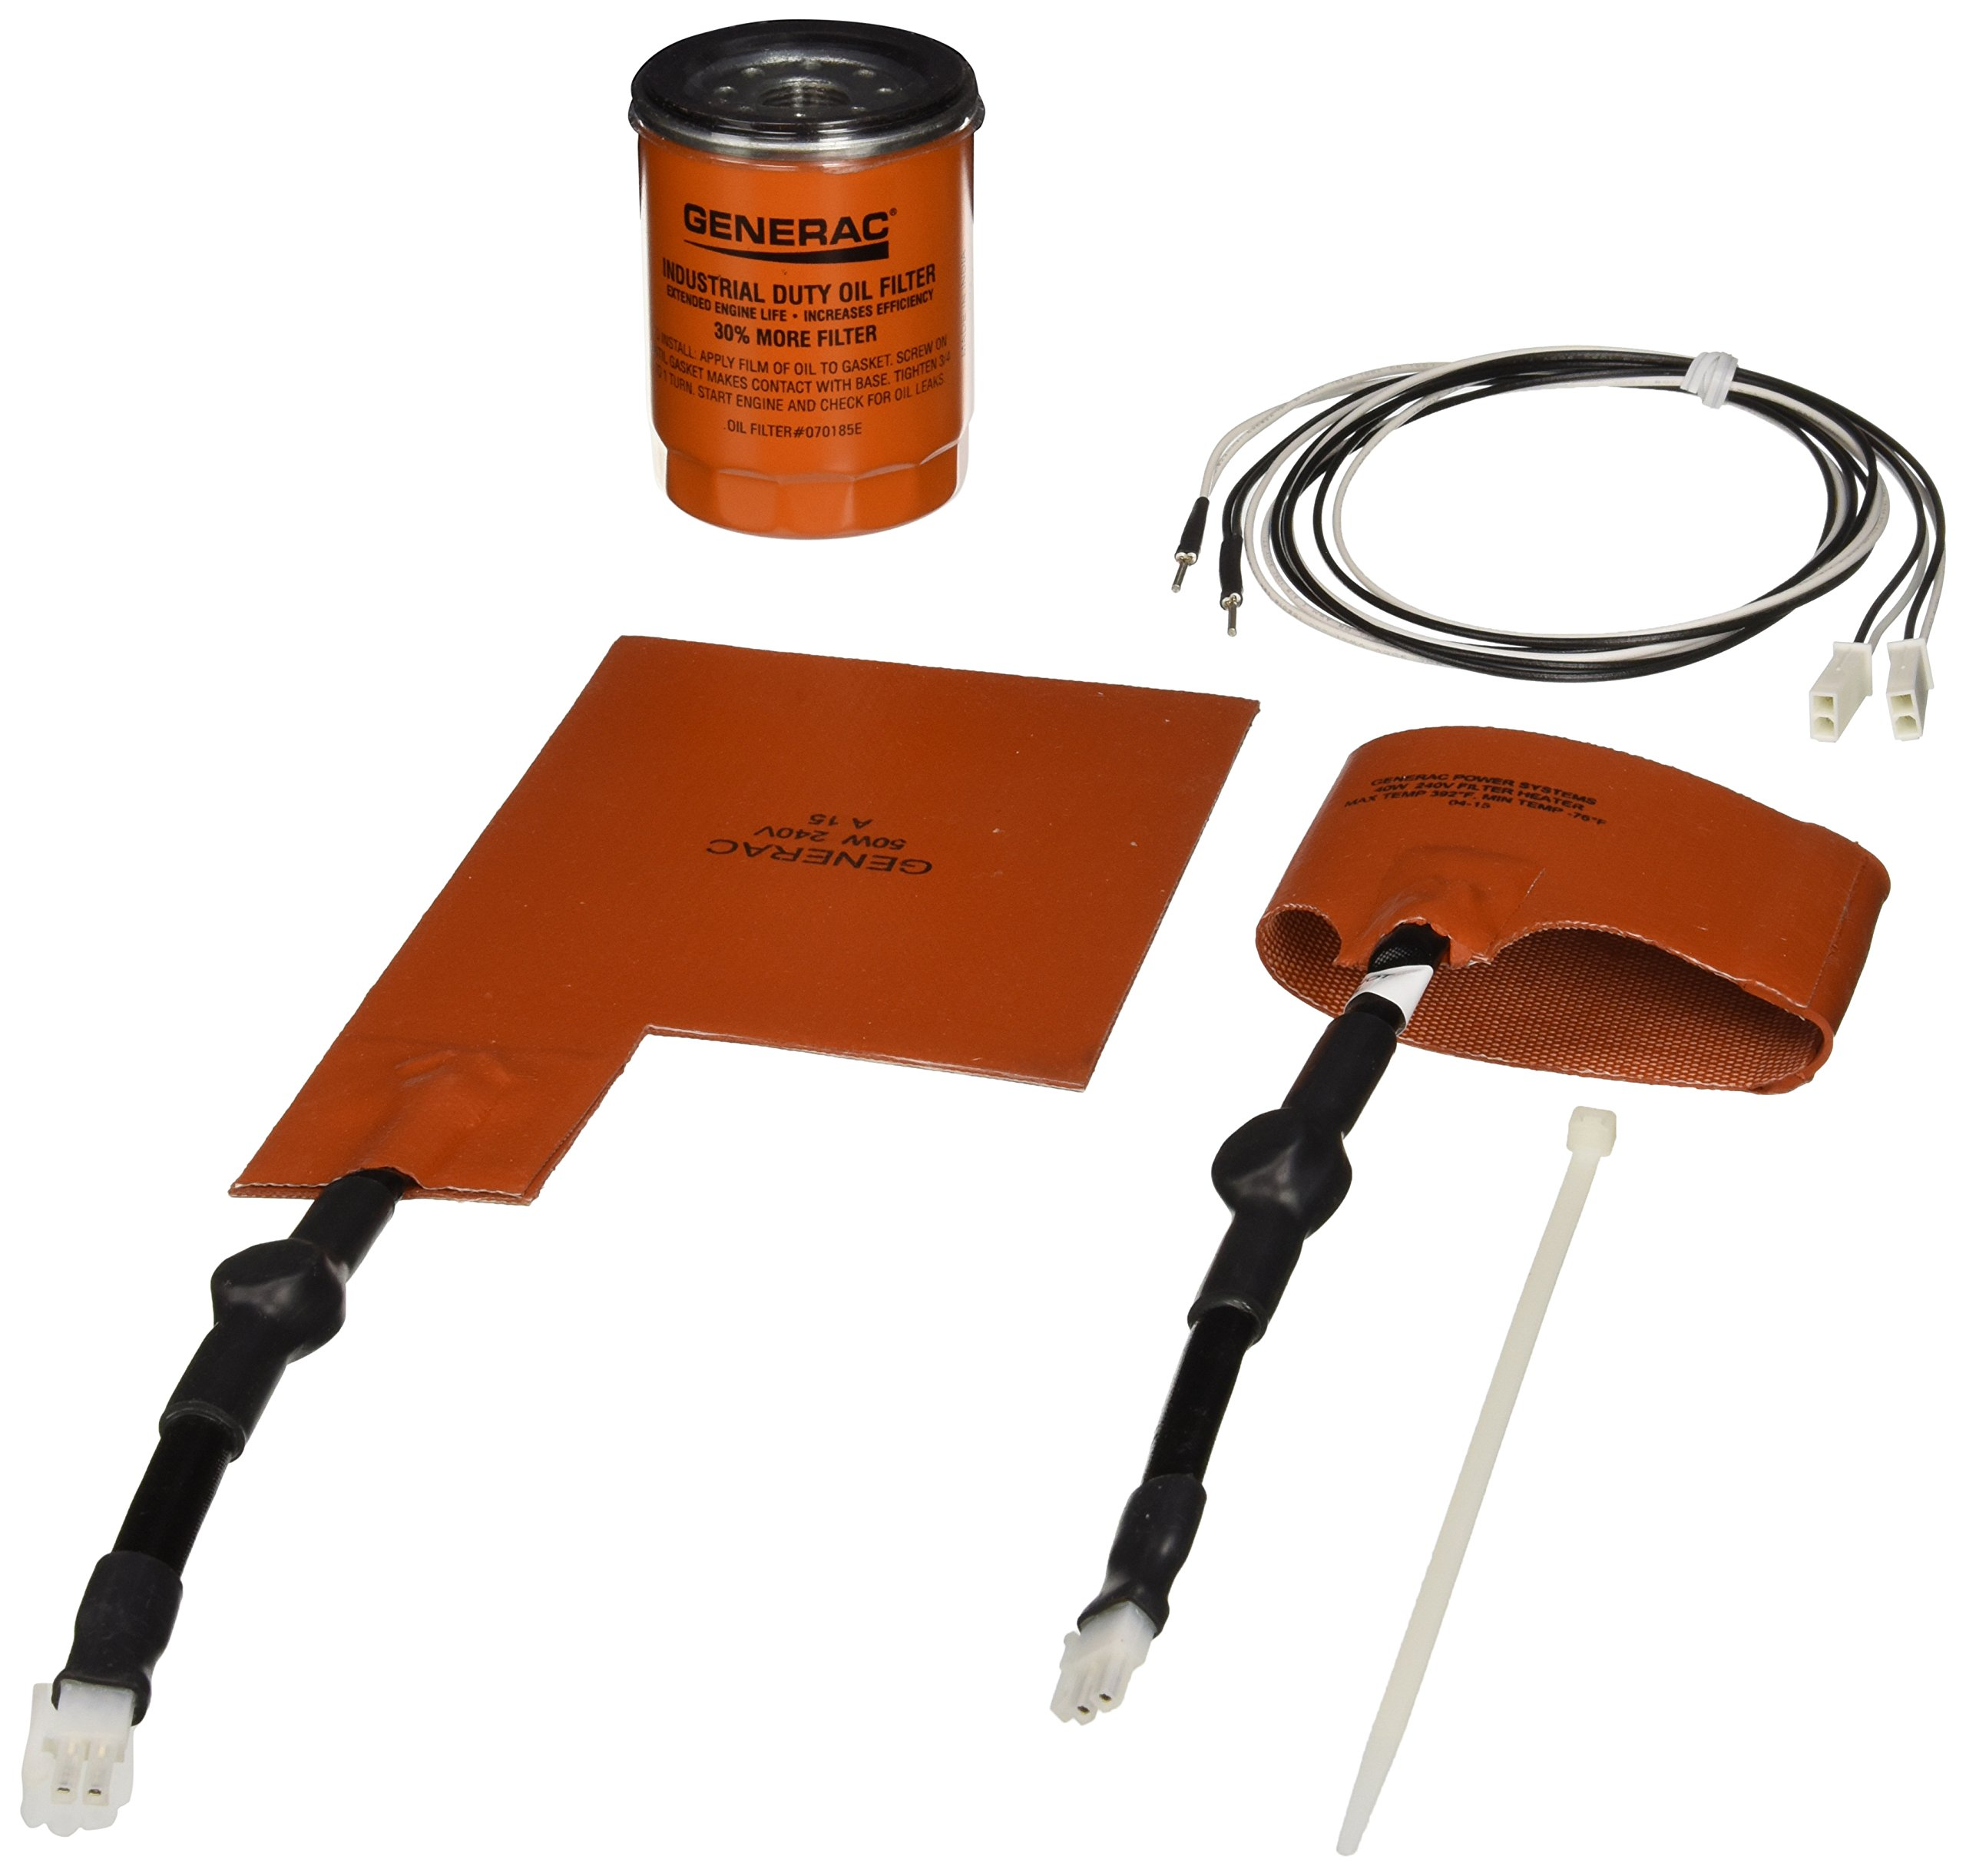 Generac 6212 - Cold Weather Kit for Air-Cooled Home Standby Generators (Discontinued by Manufacturer)